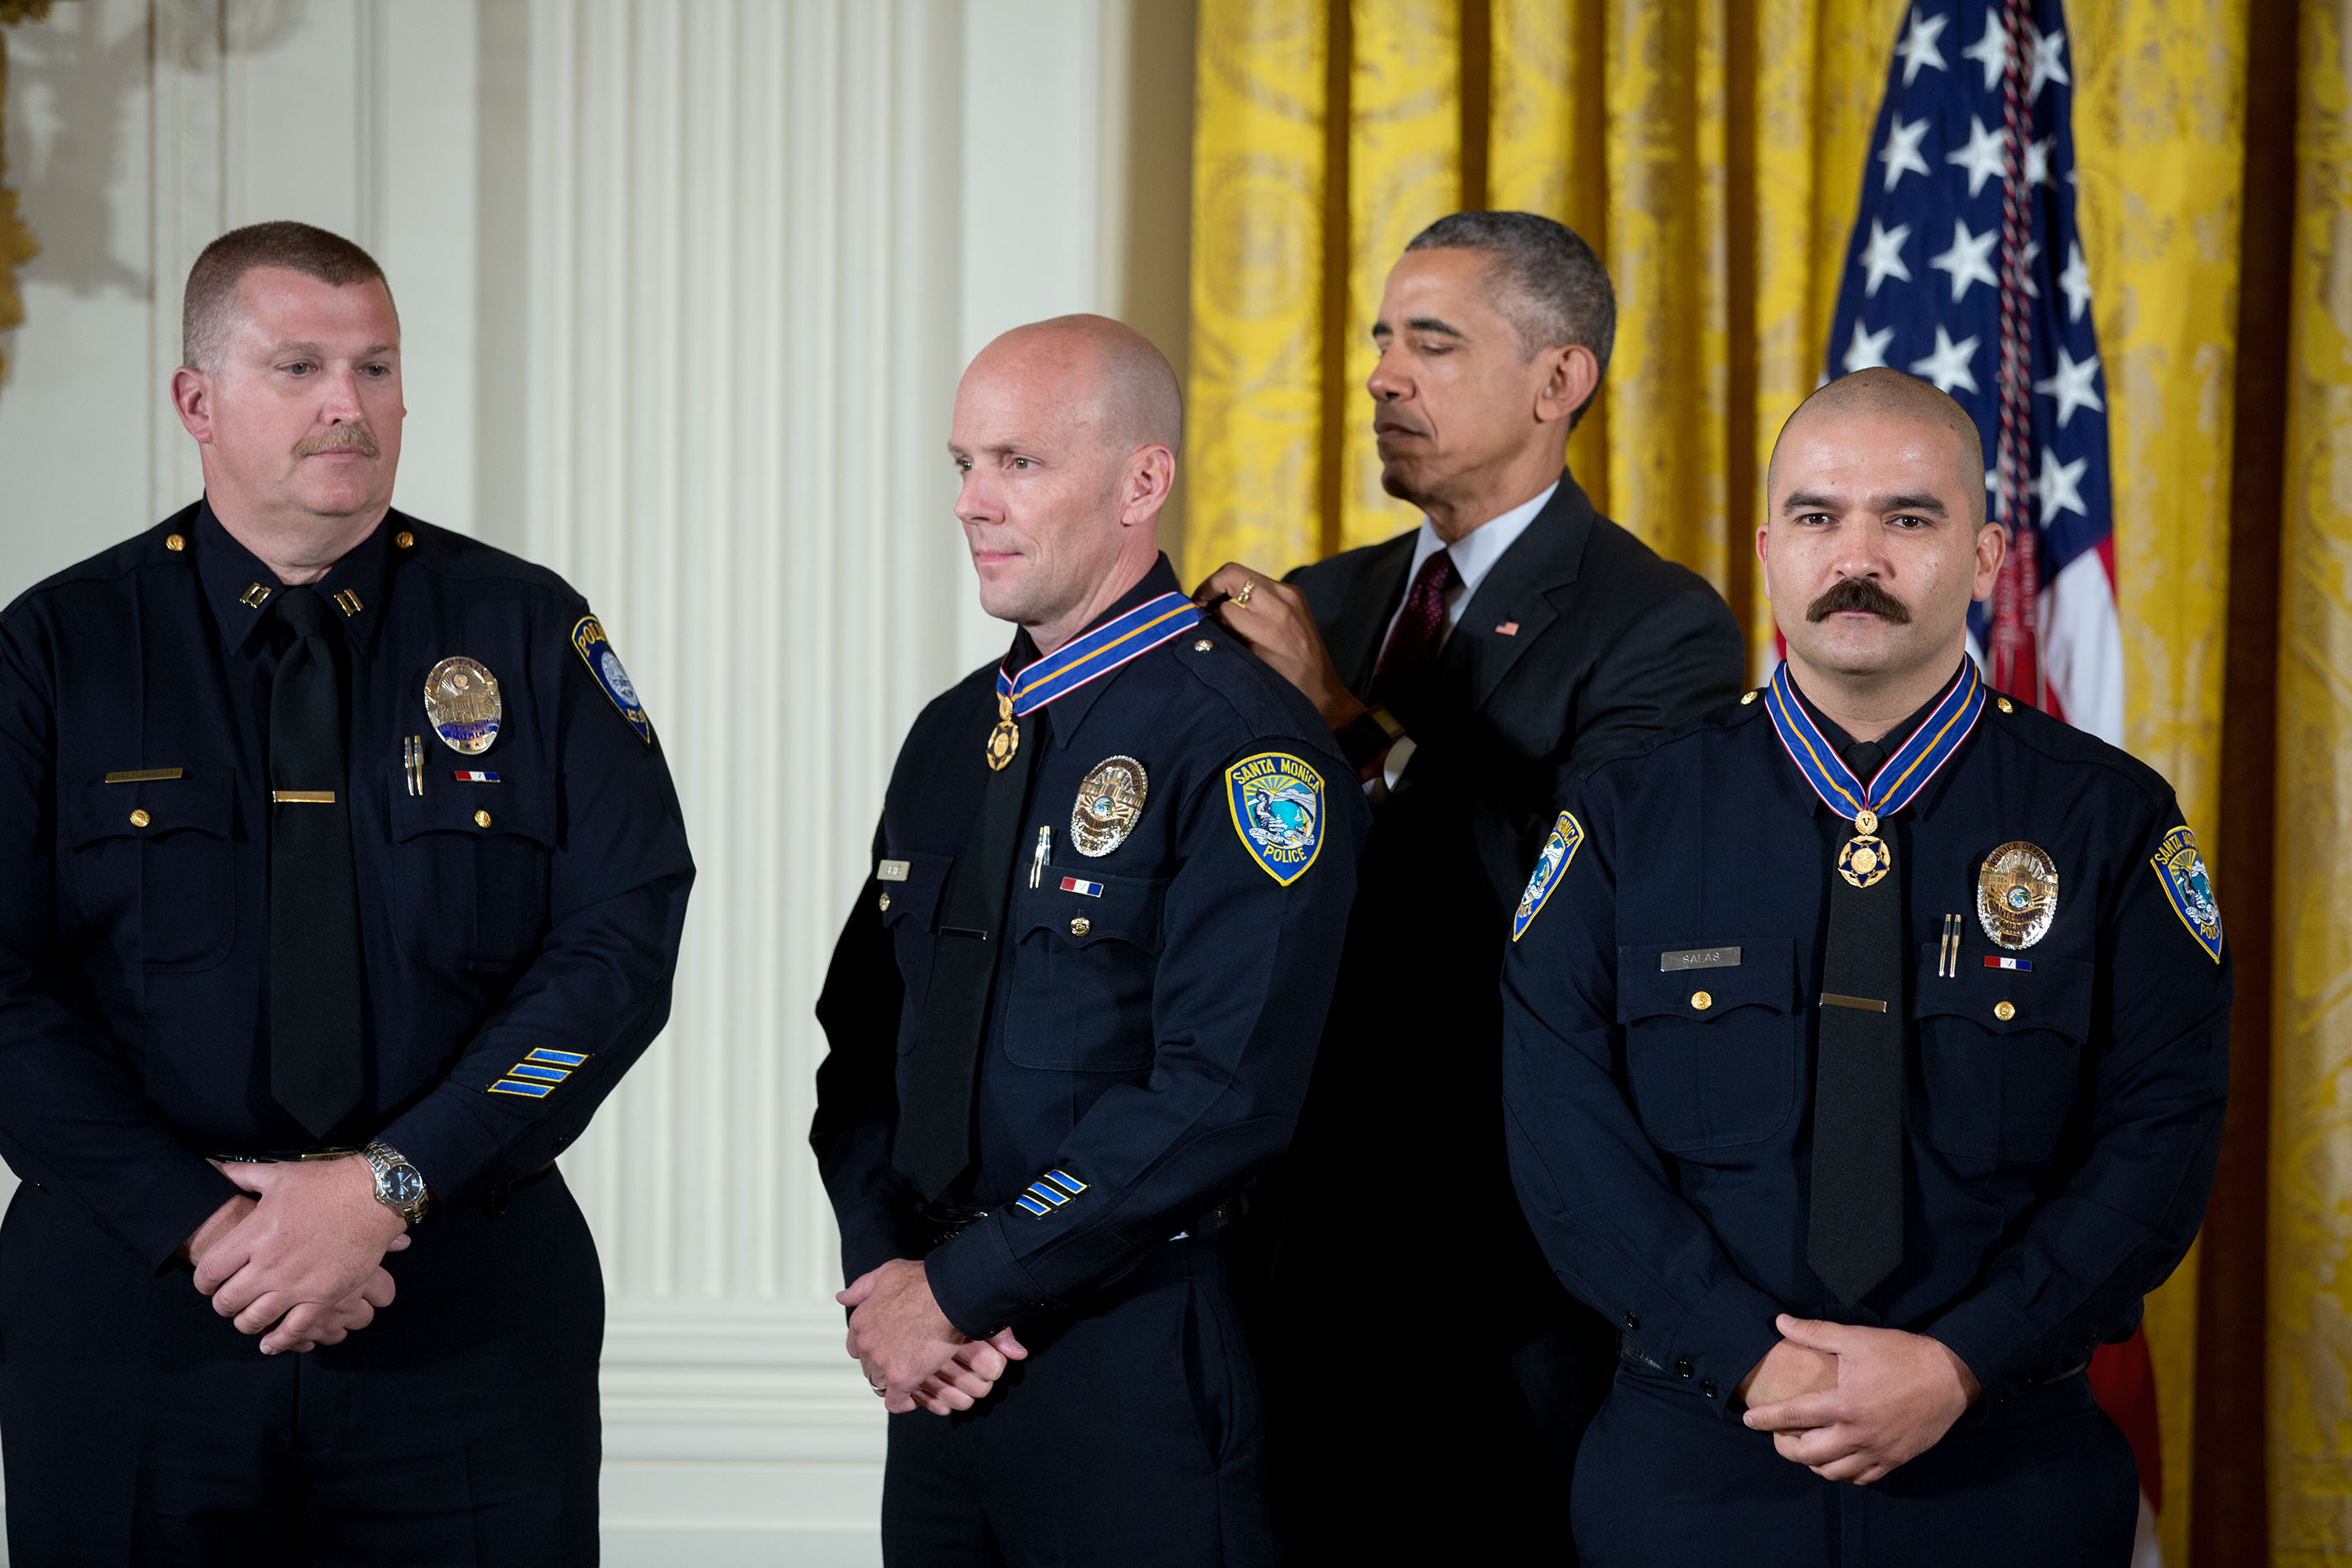 President Barack Obama awards the Medal of Valor to Officer Jason Salas, Officer Robert Sparks, and Captain Raymond Bottenfield of the Santa Monica College Police Department, Calif., during a ceremony in the East Room of the White House, May 16, 2016. The Medal of Valor is awarded to public safety officers who have exhibited exceptional courage, regardless of personal safety, in the attempt to save or protect others from harm. (Official White House Photo By Chuck Kennedy)